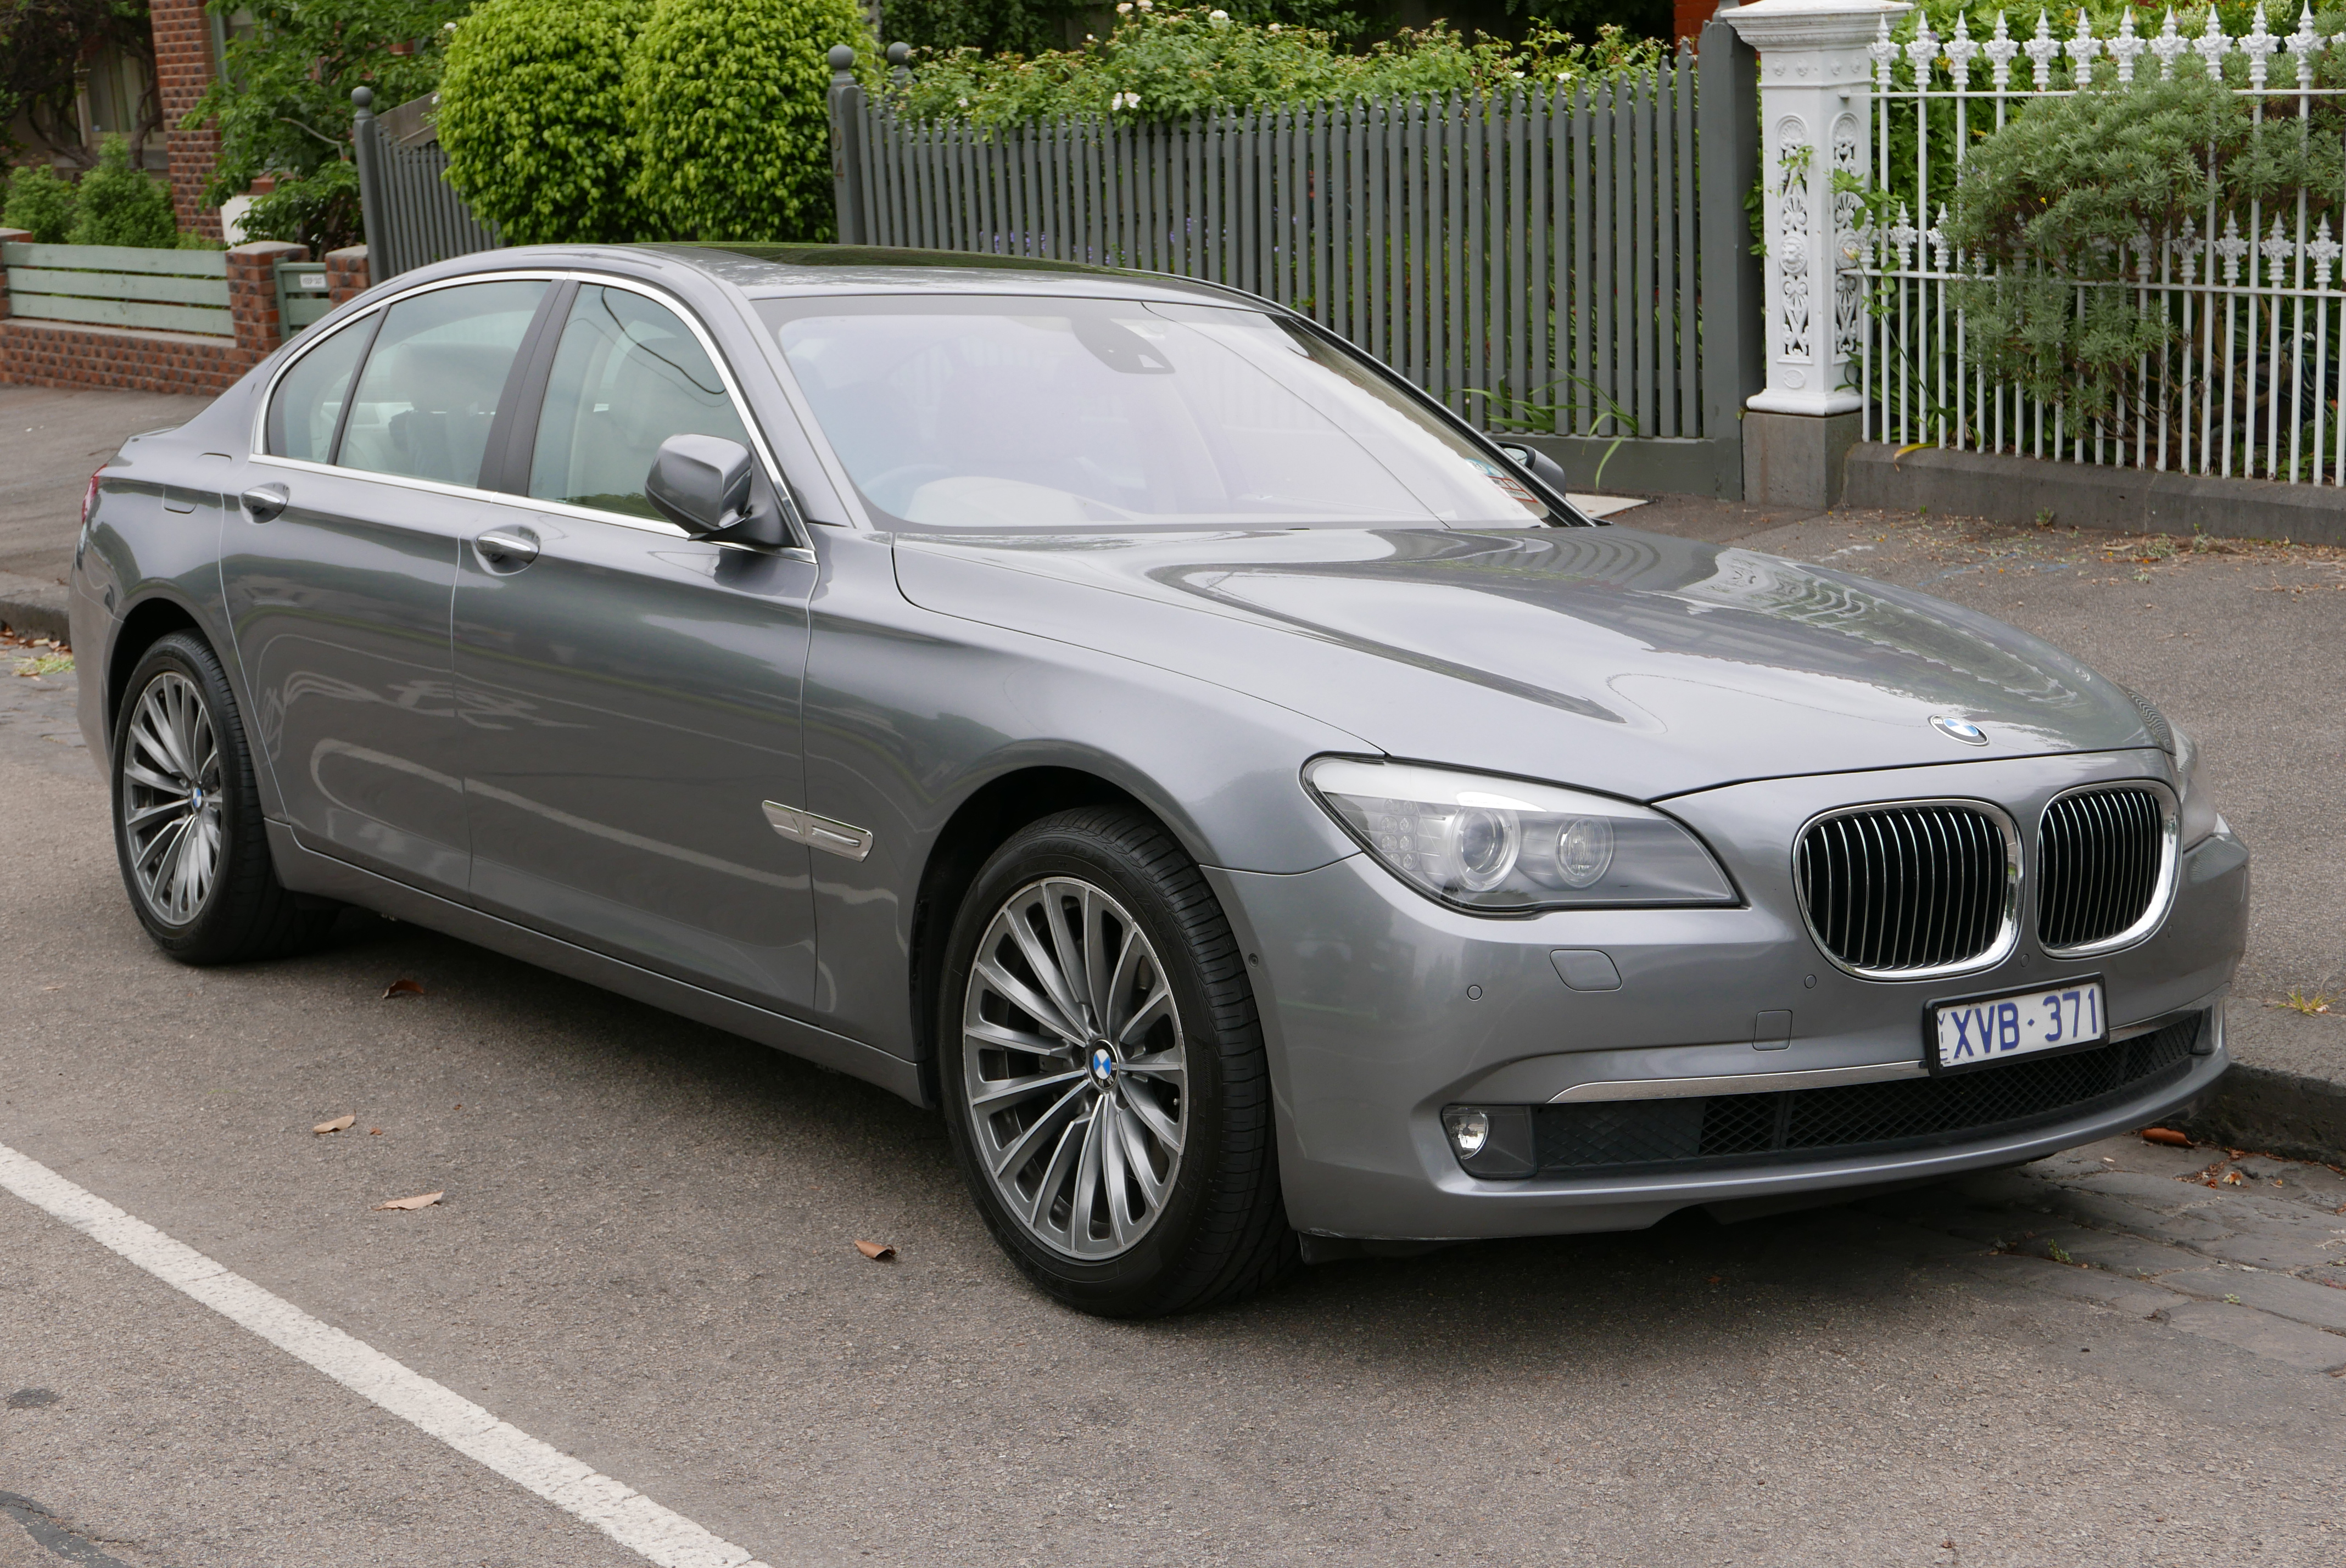 file 2010 bmw 730d f01 my10 sedan 2015 12 07 wikimedia commons. Black Bedroom Furniture Sets. Home Design Ideas